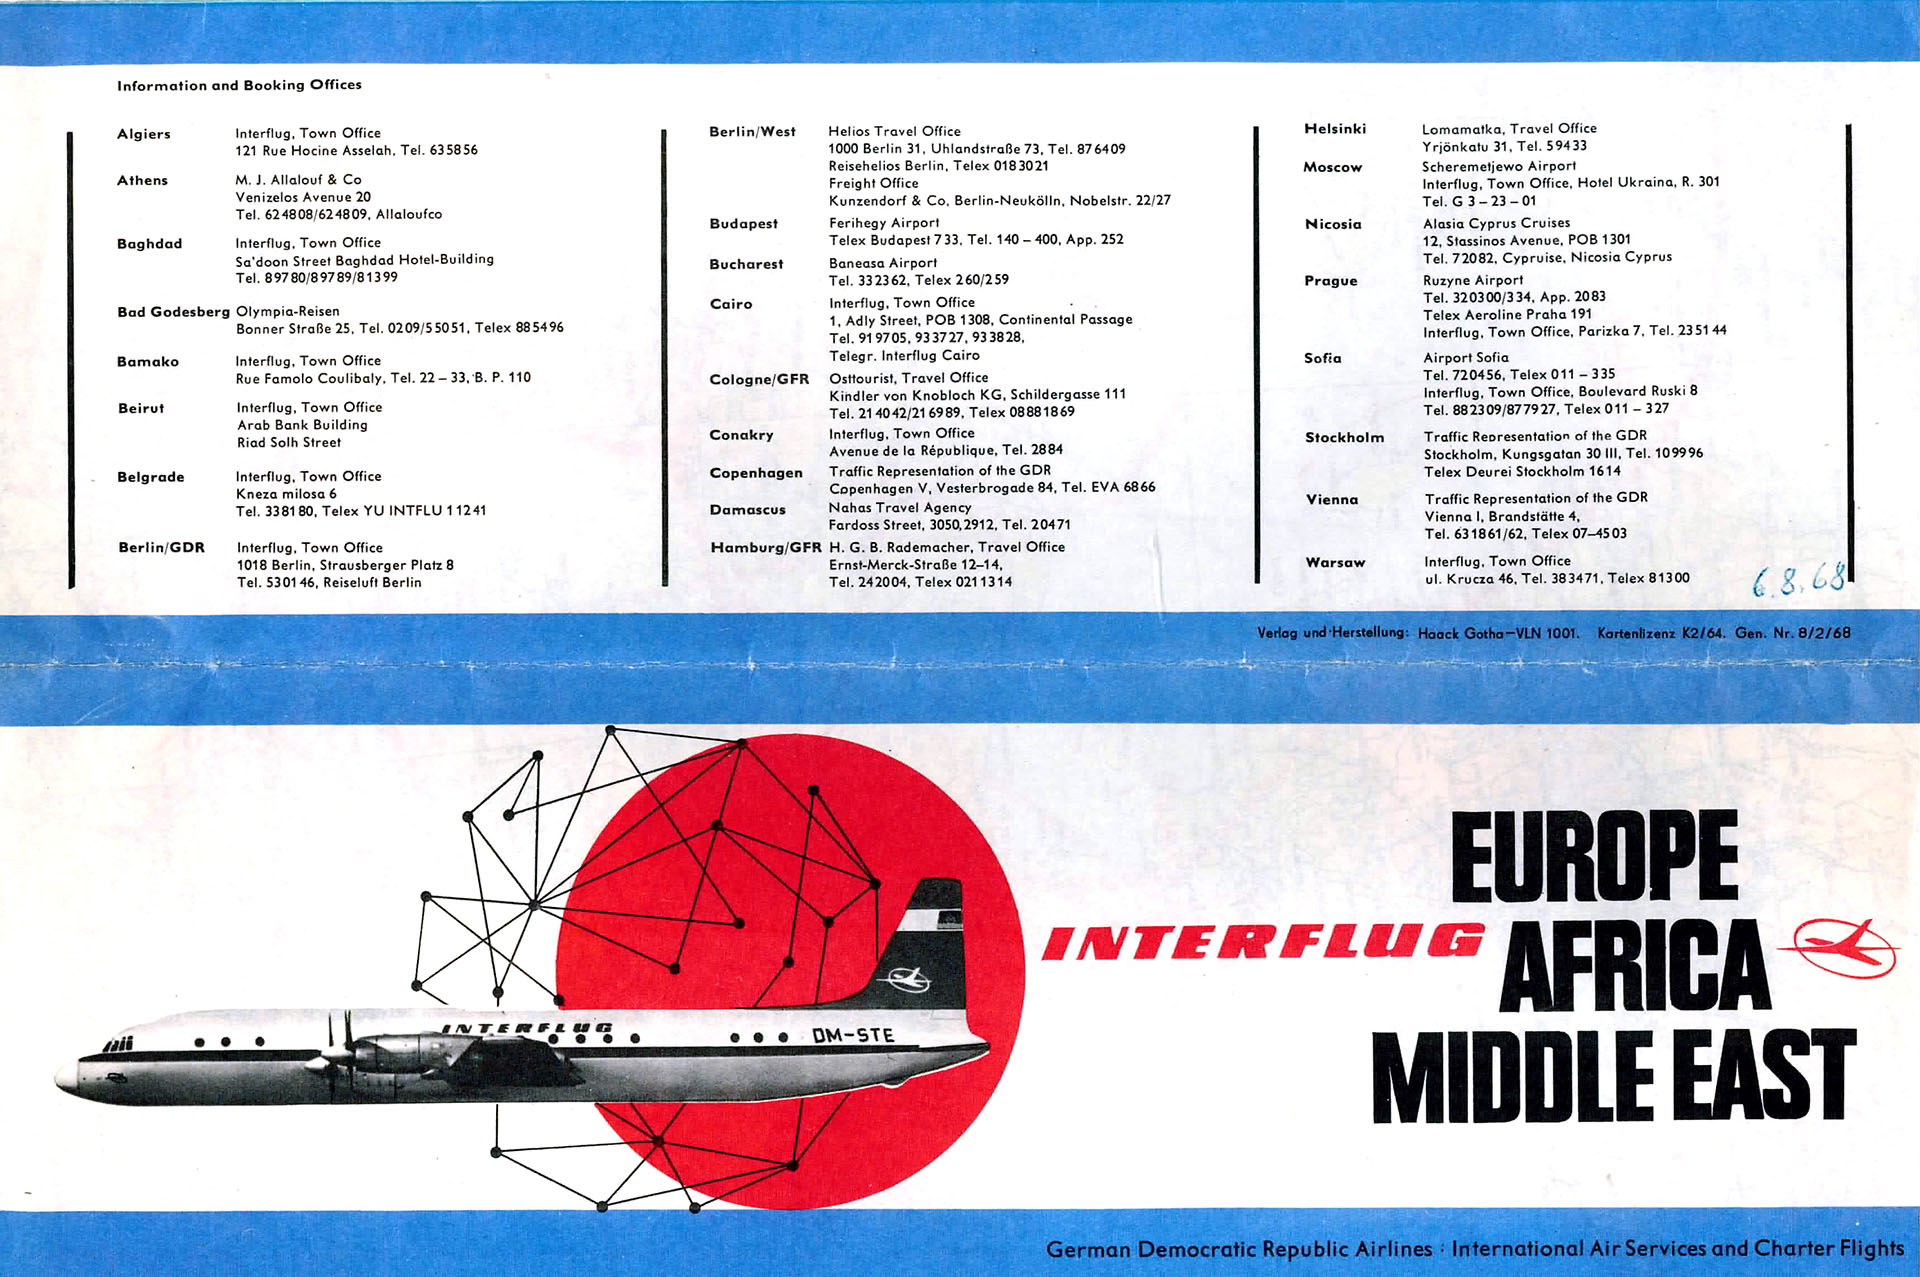 Webeprospekt Interflug: EUROPA - AFRICA - MIDDLE EAST - German Democratic Republic Airlines